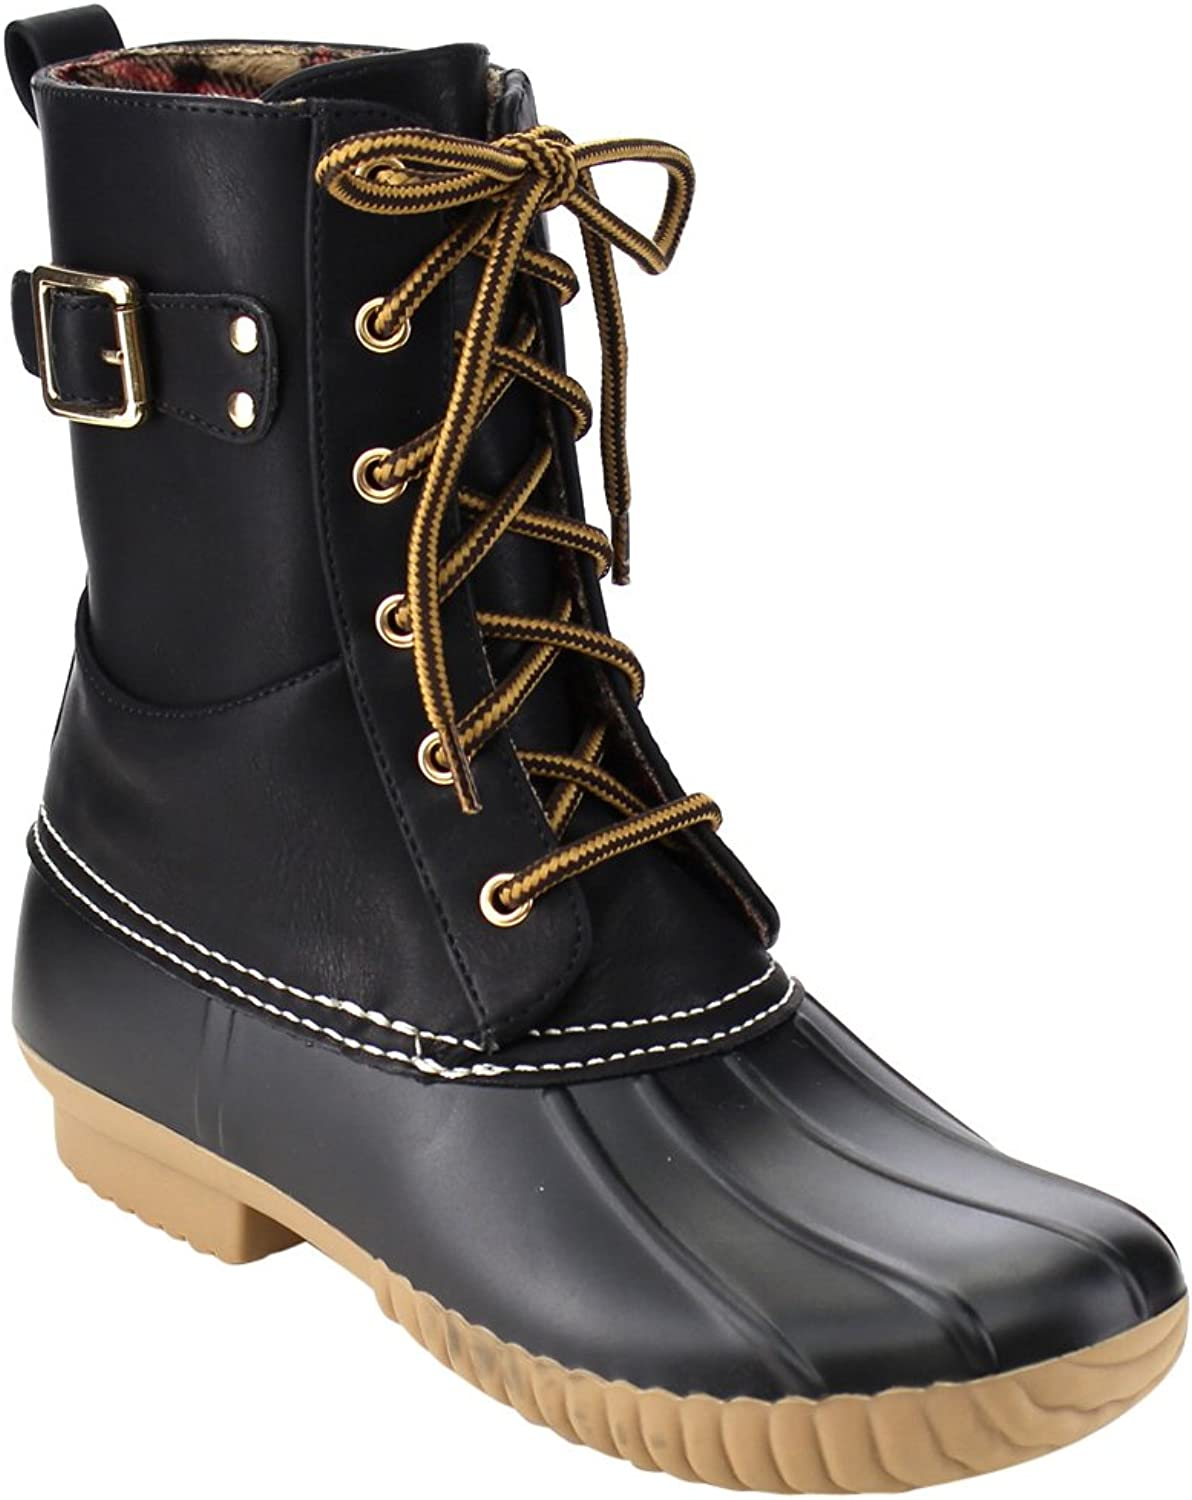 Wild Diva Lounge Devina-04A Women's Ankle High Lace Up Duck Rain Boots